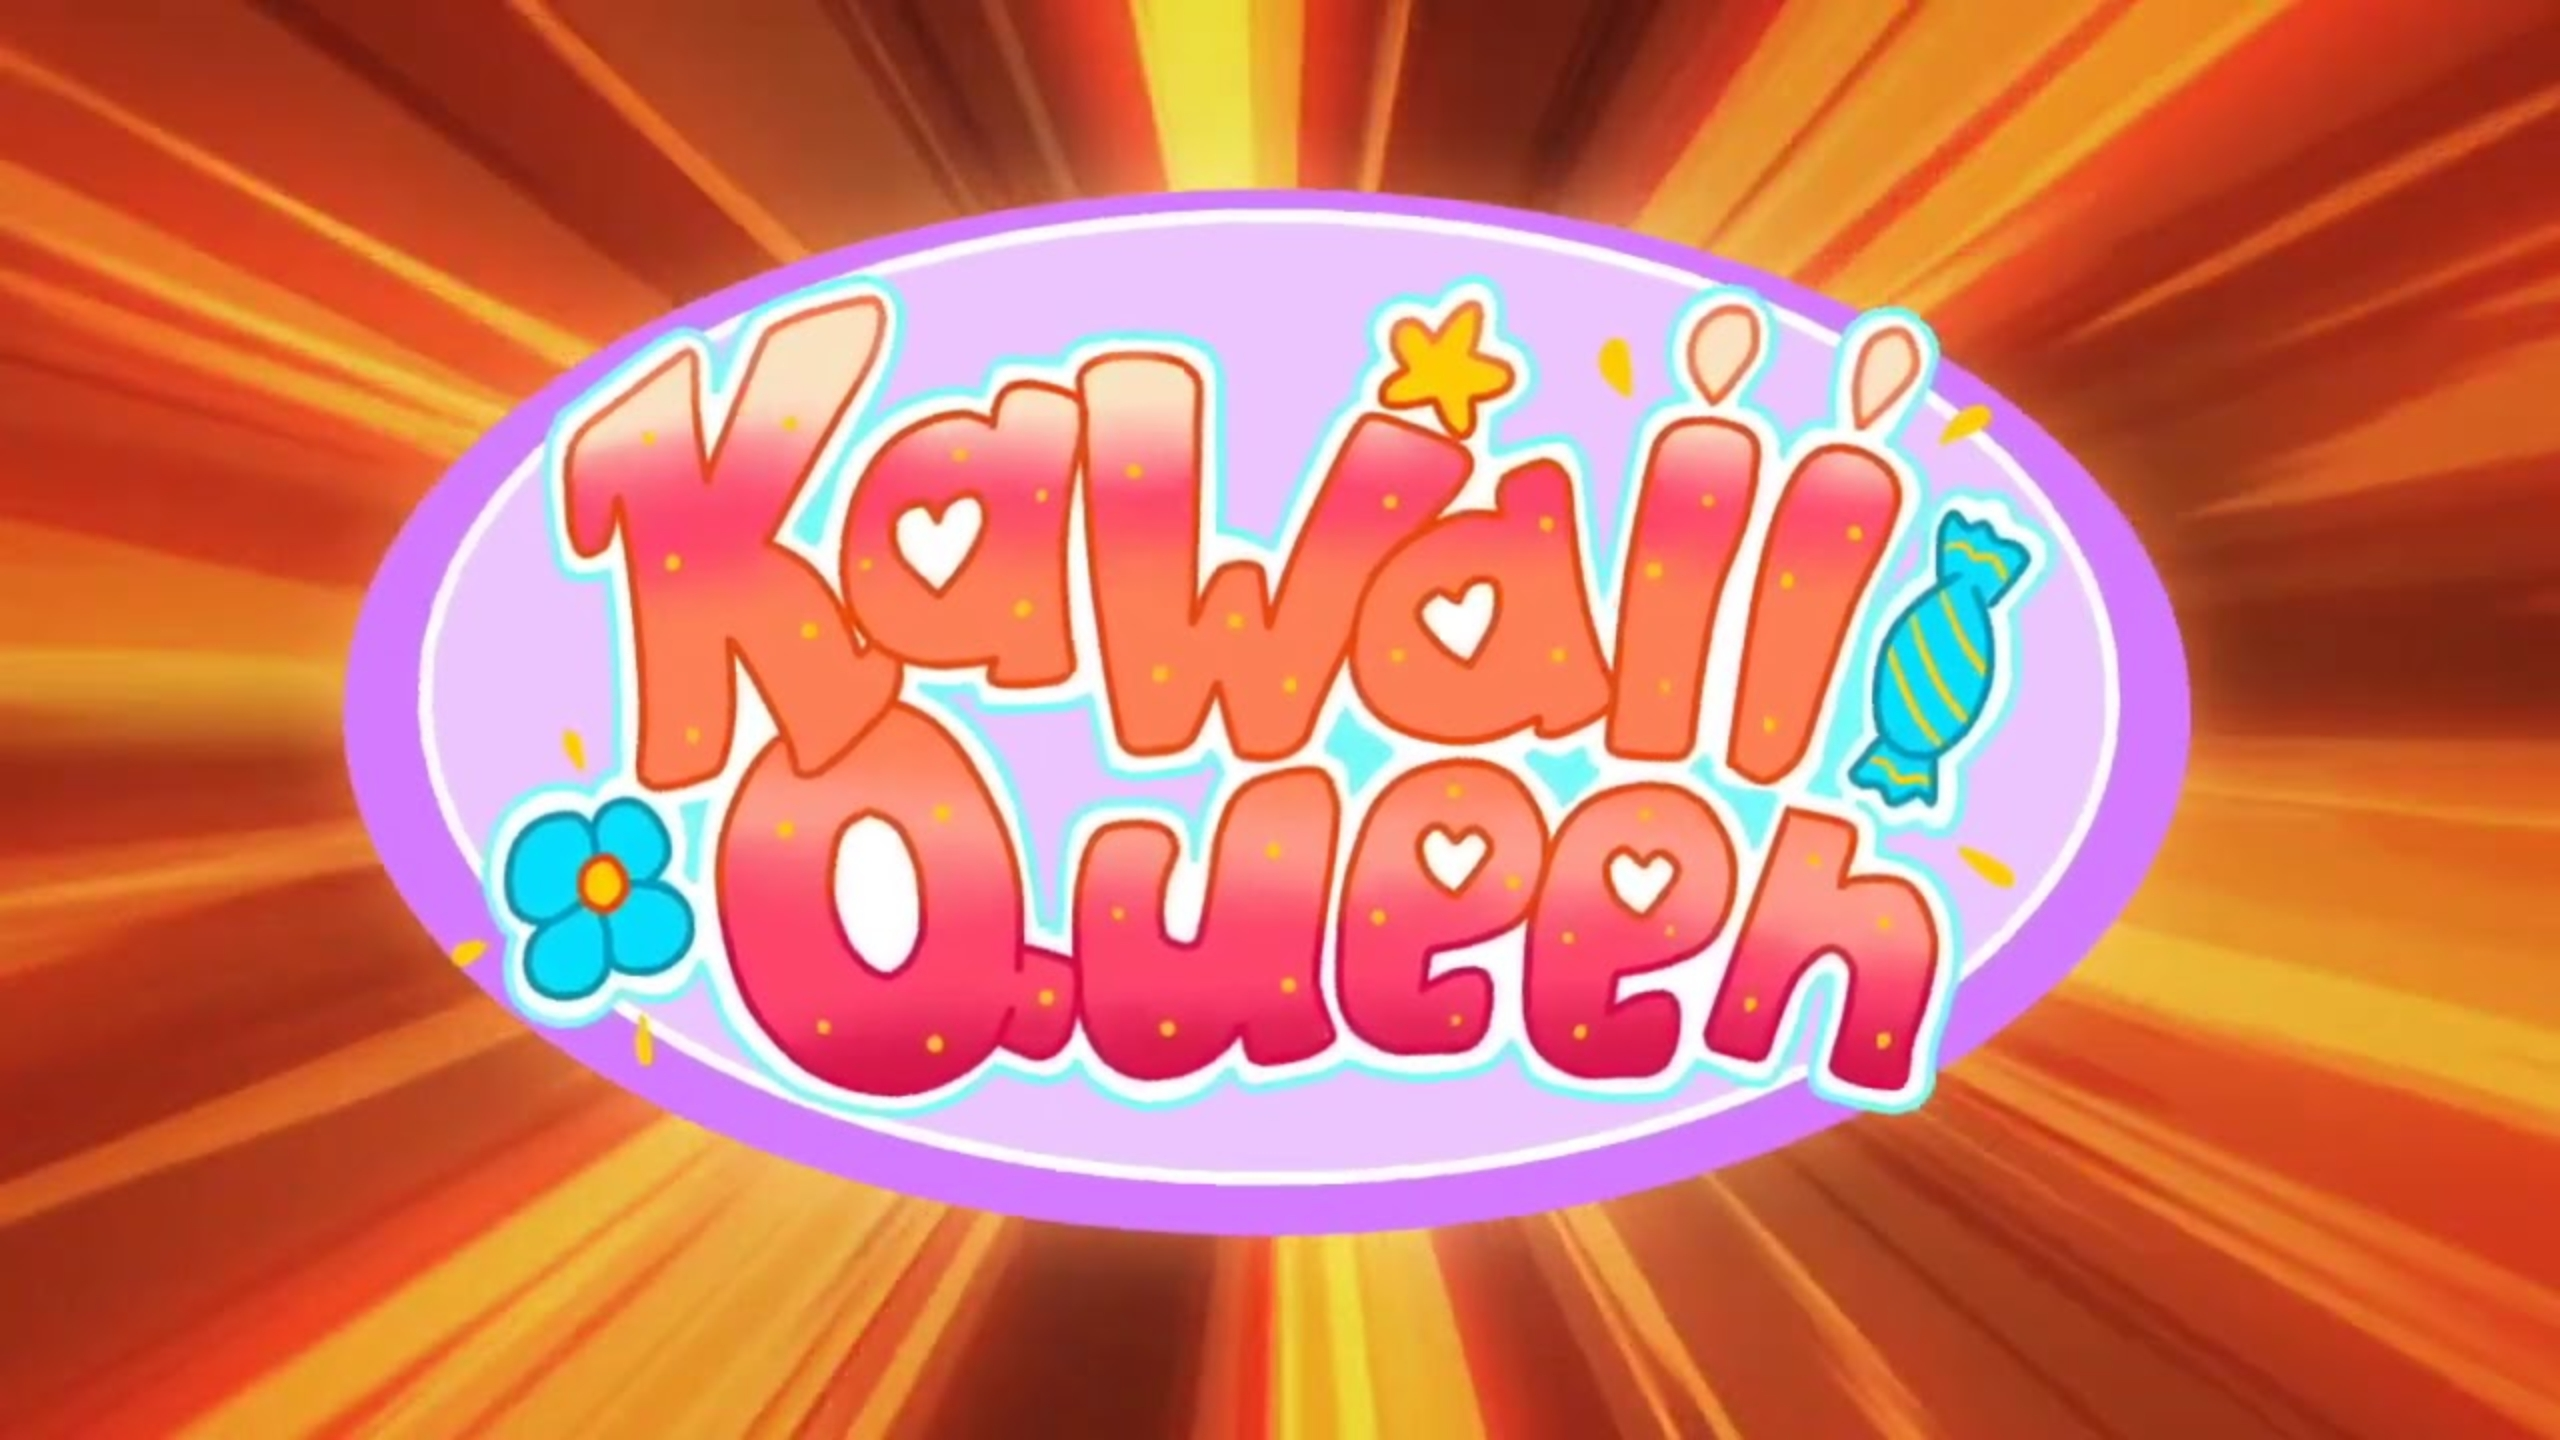 Se Kawaii Queen Online Slot Demo Game, Five Men Games